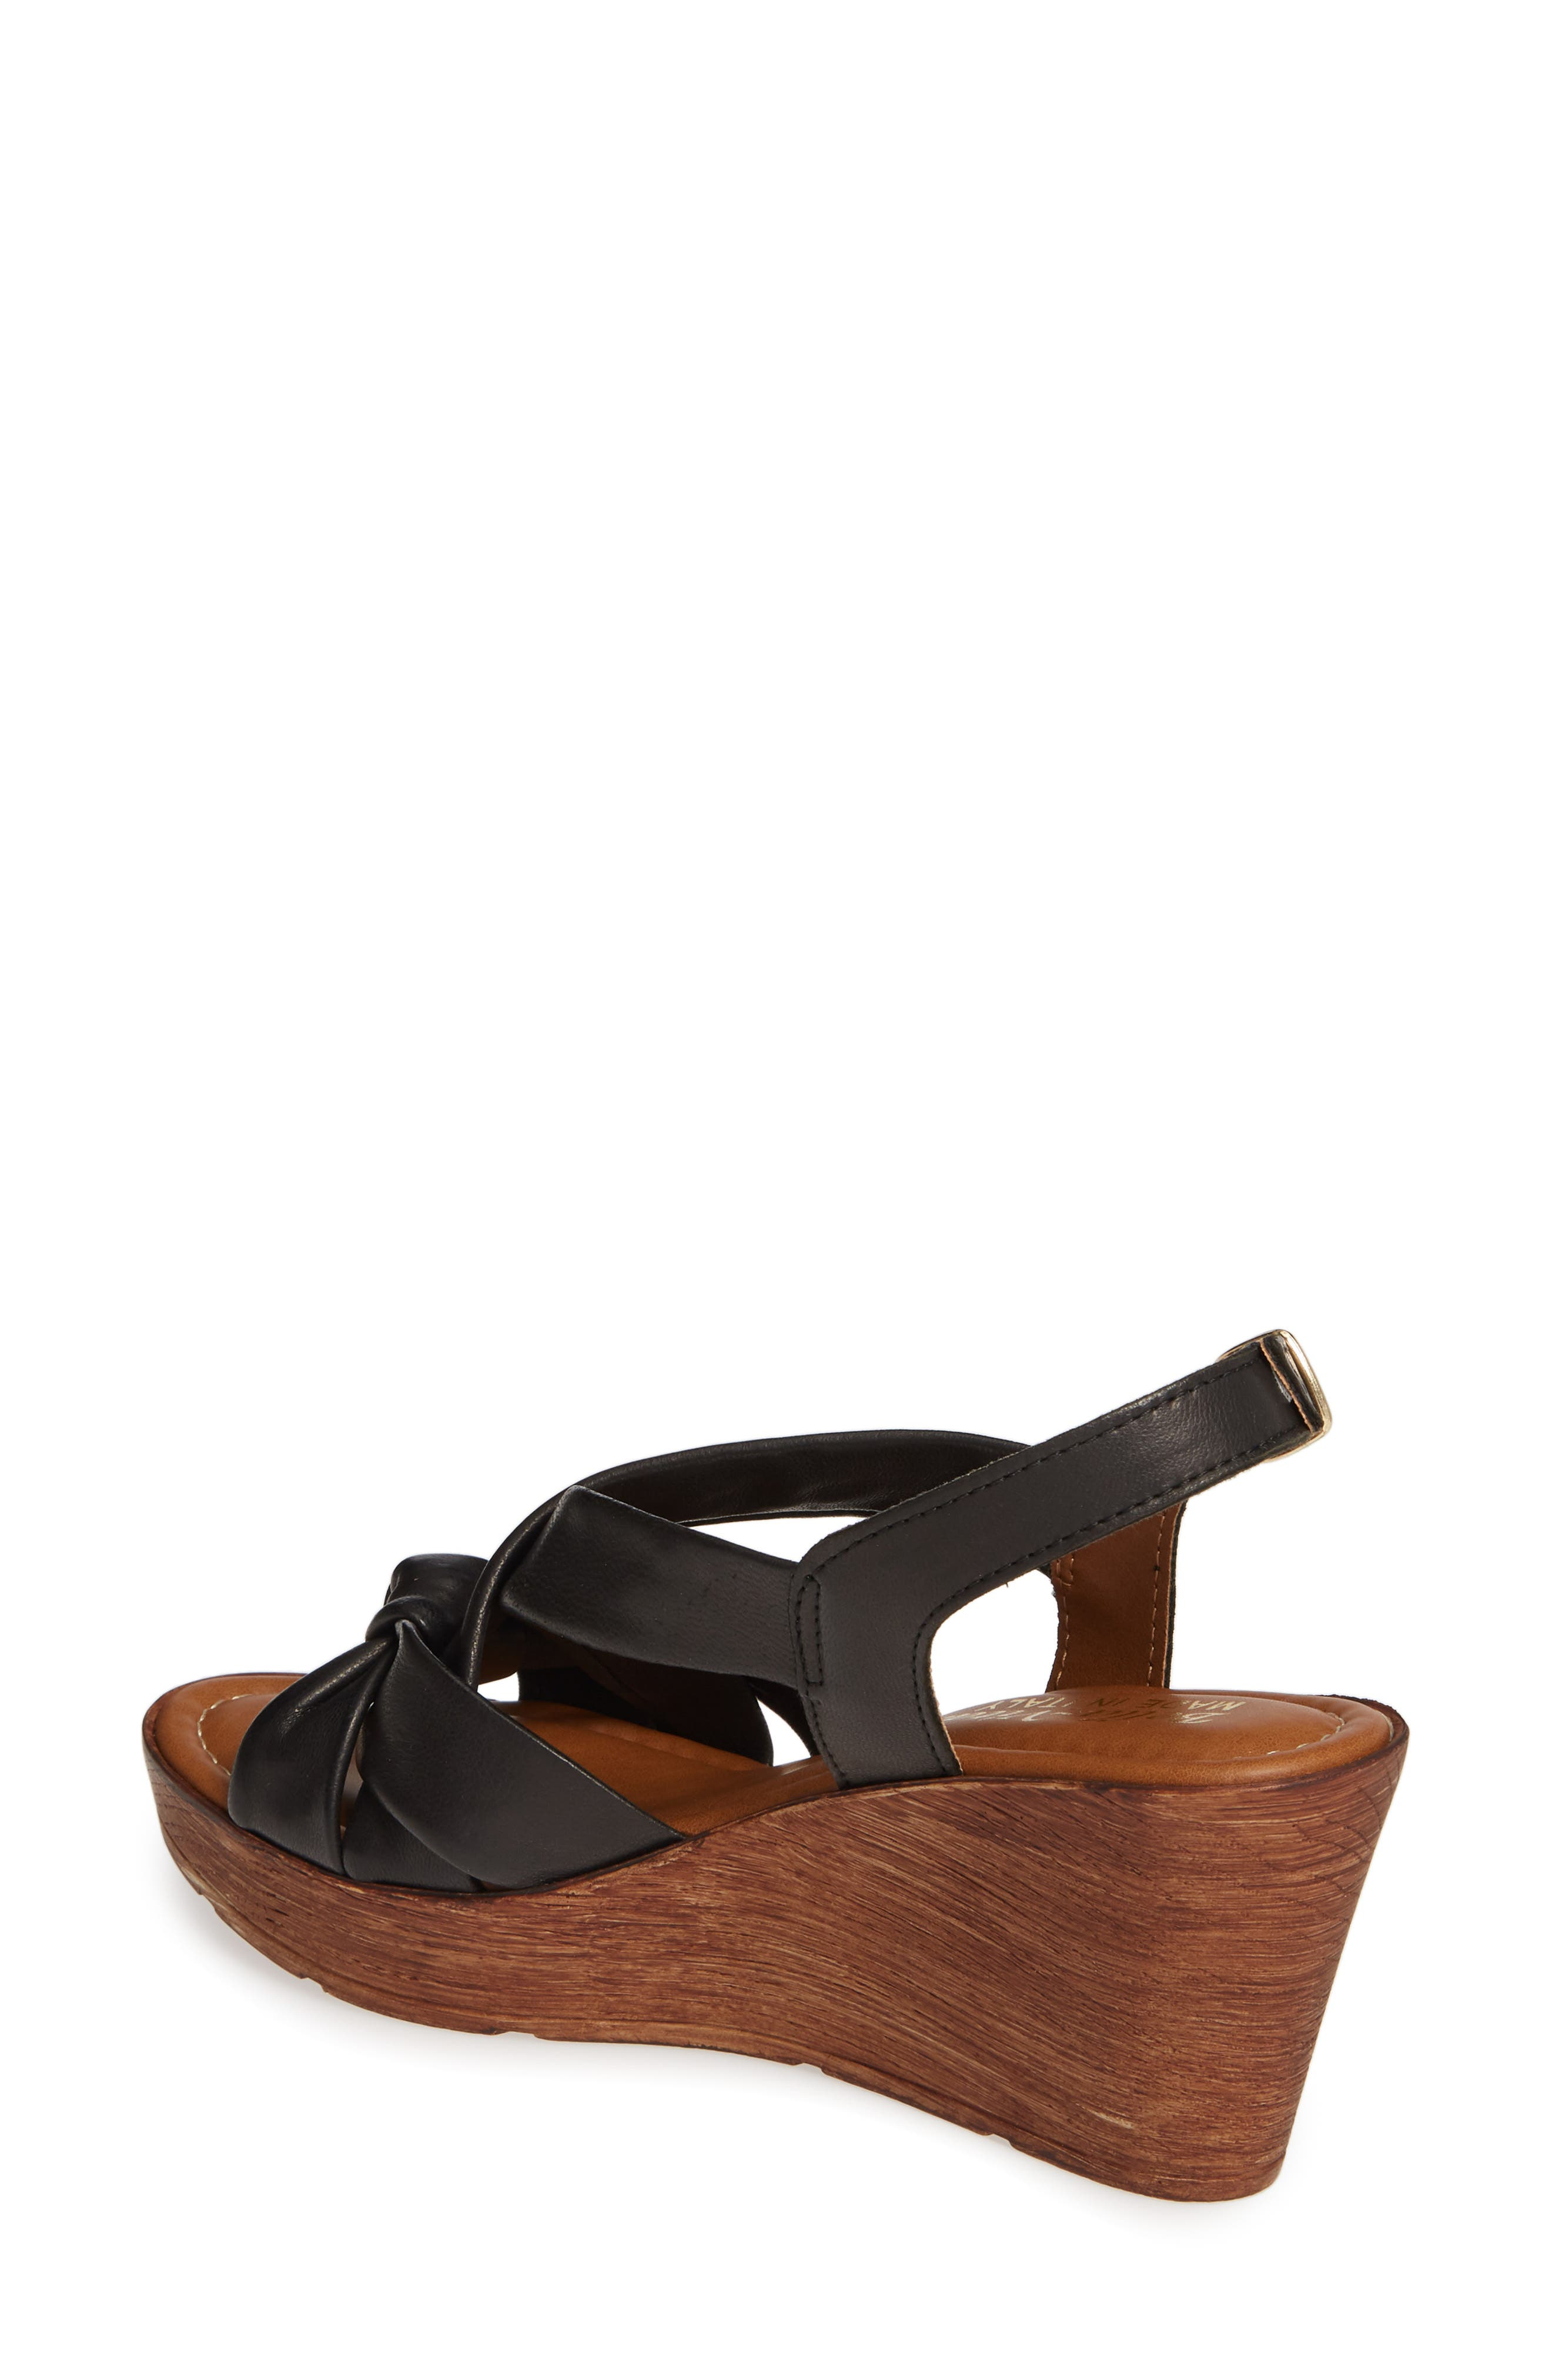 BELLA VITA, Italy Wedge Sandal, Alternate thumbnail 2, color, BLACK ITALIAN LEATHER